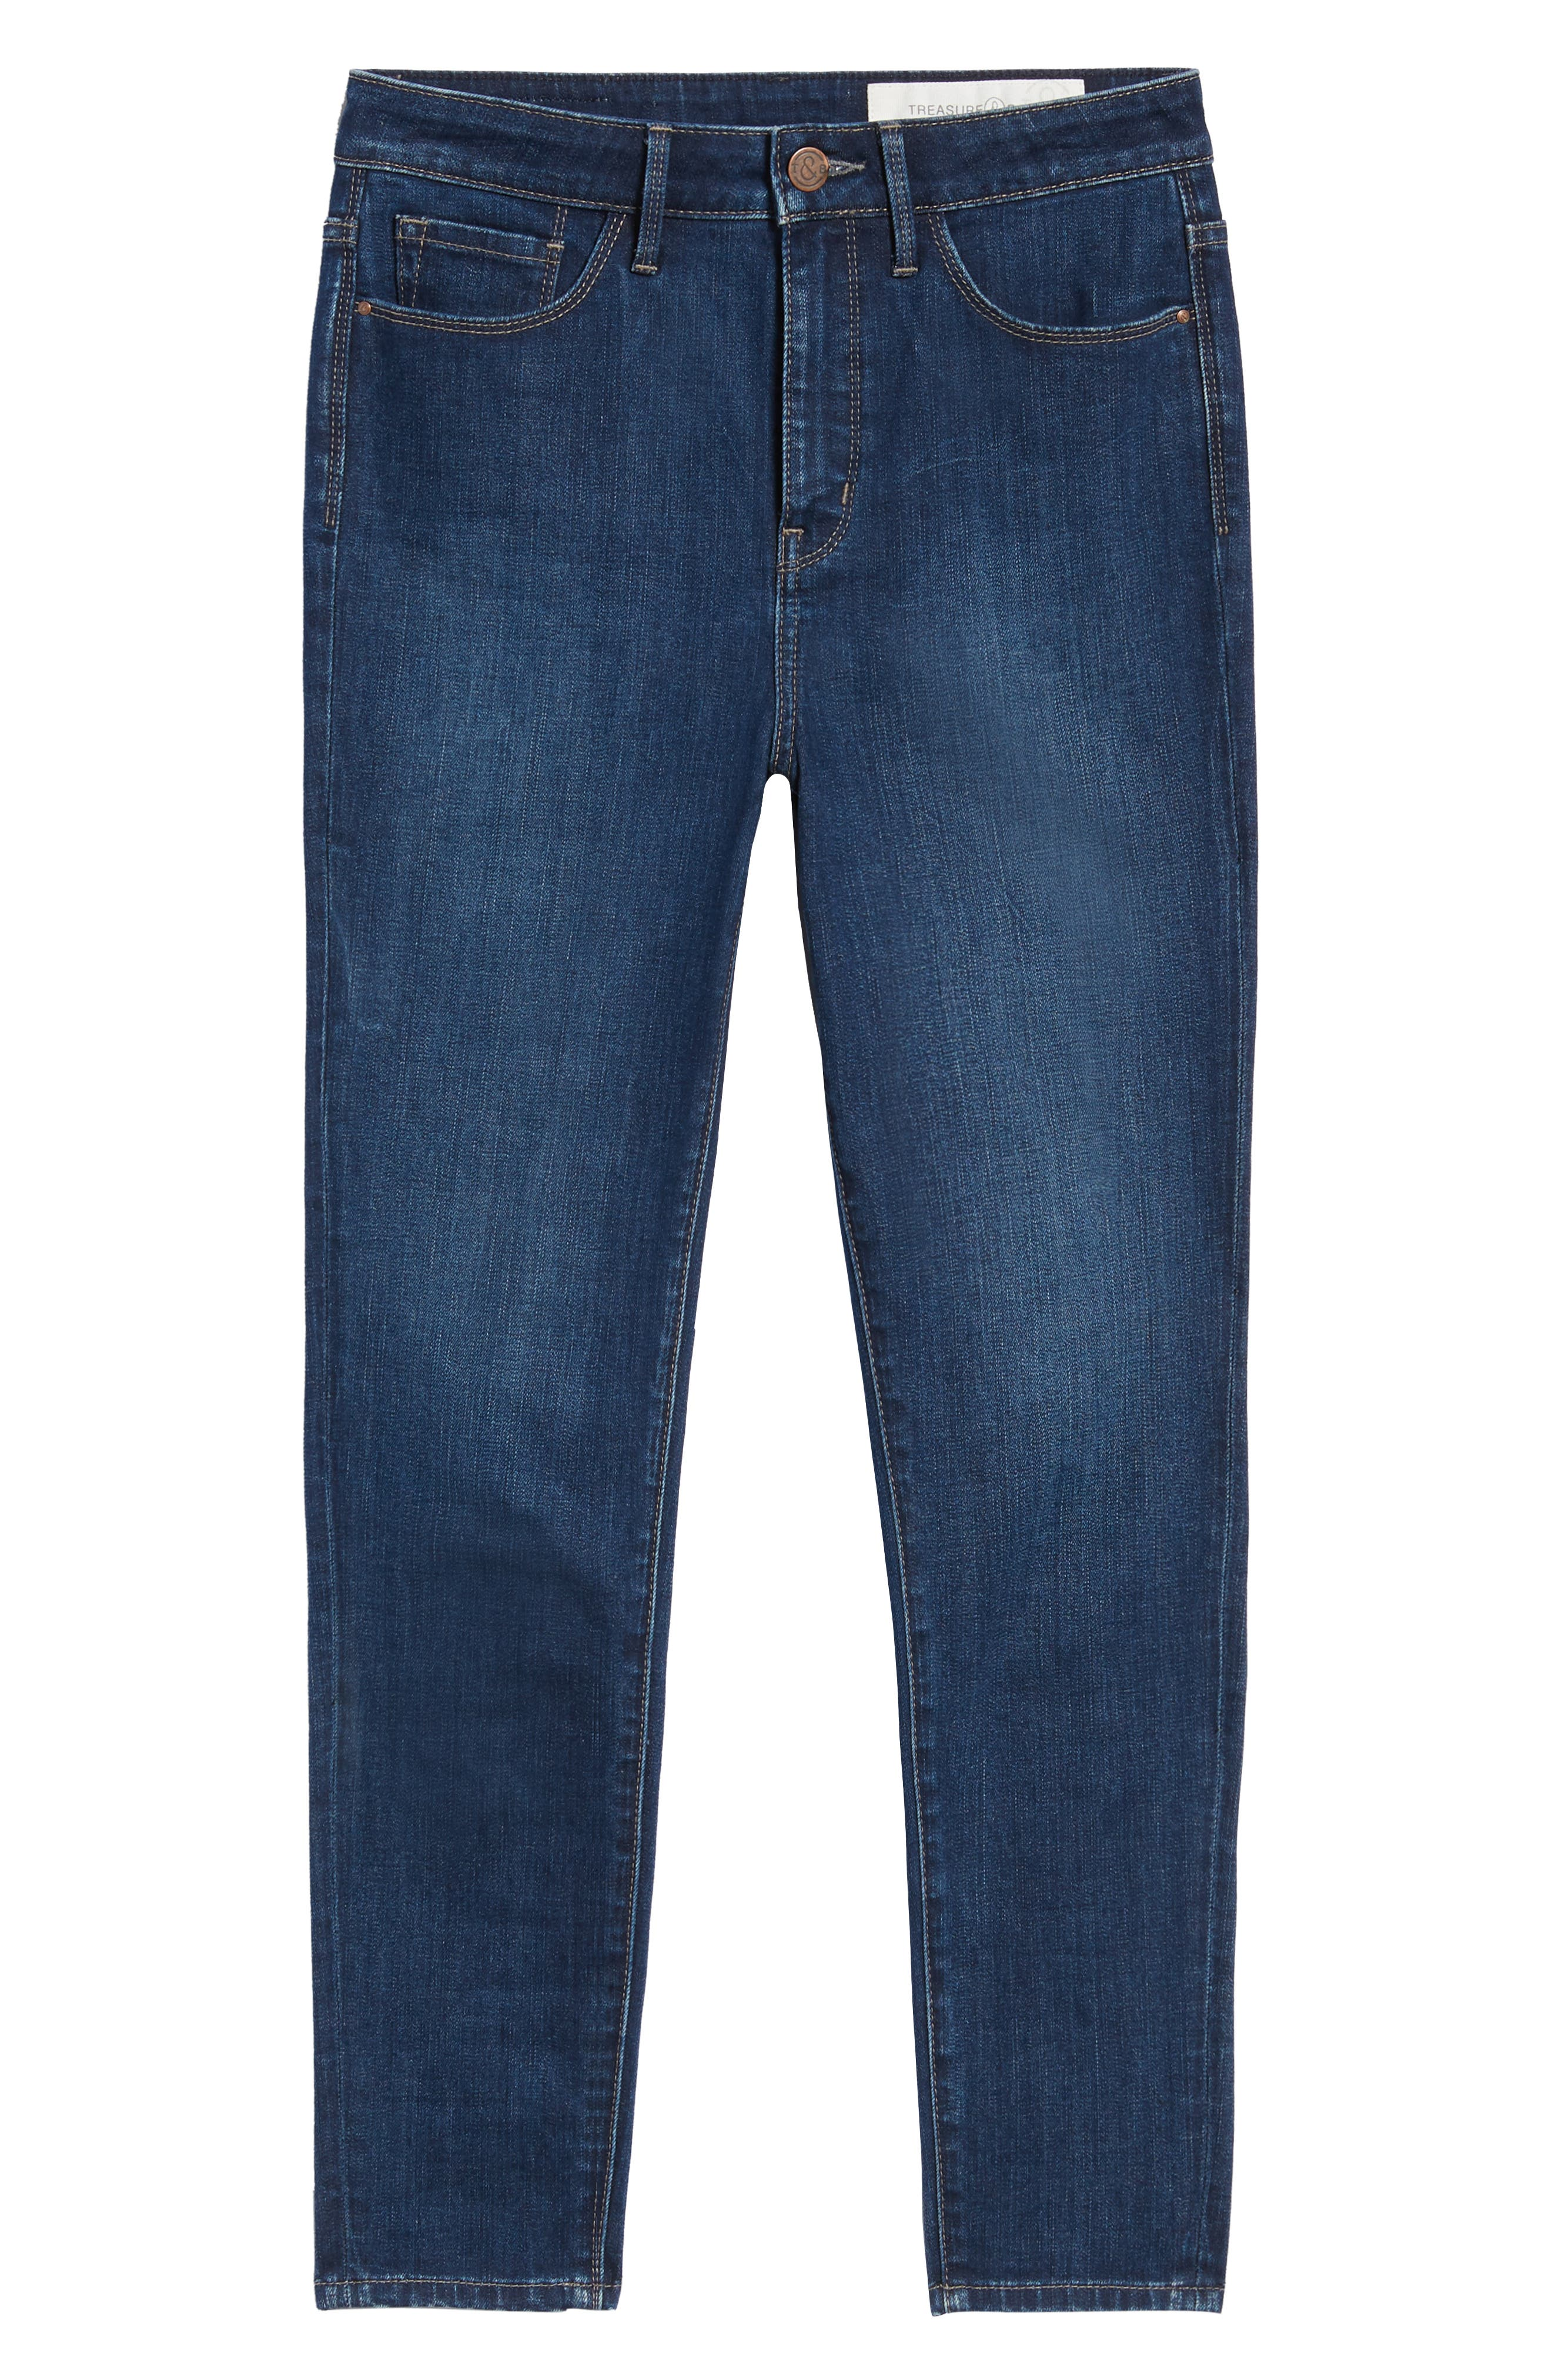 Charity High Waist Ankle Skinny Jeans,                             Alternate thumbnail 6, color,                             401